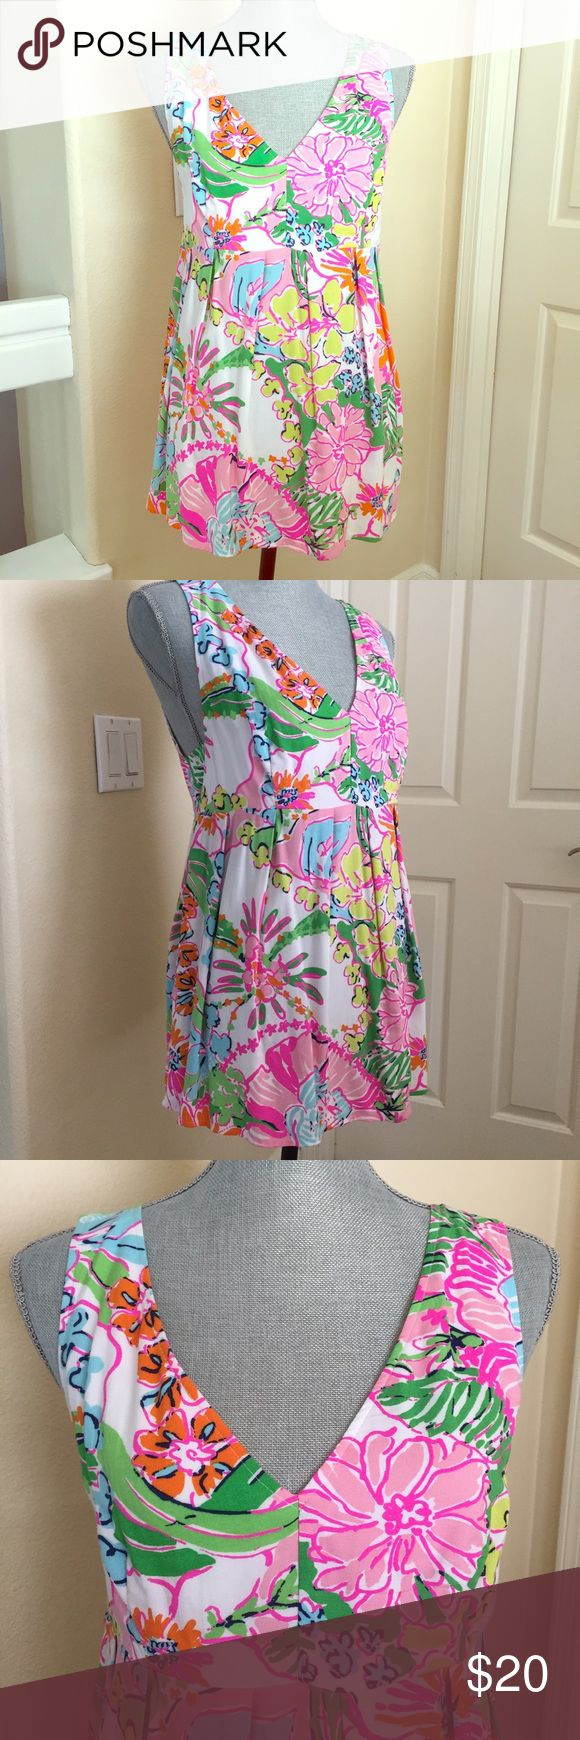 """Lilly Pulitzer Floral Top Beautiful bright floral Lilly Pulitzer top with pleated front and zipper in the back. 26"""" long. Lilly Pulitzer Tops"""